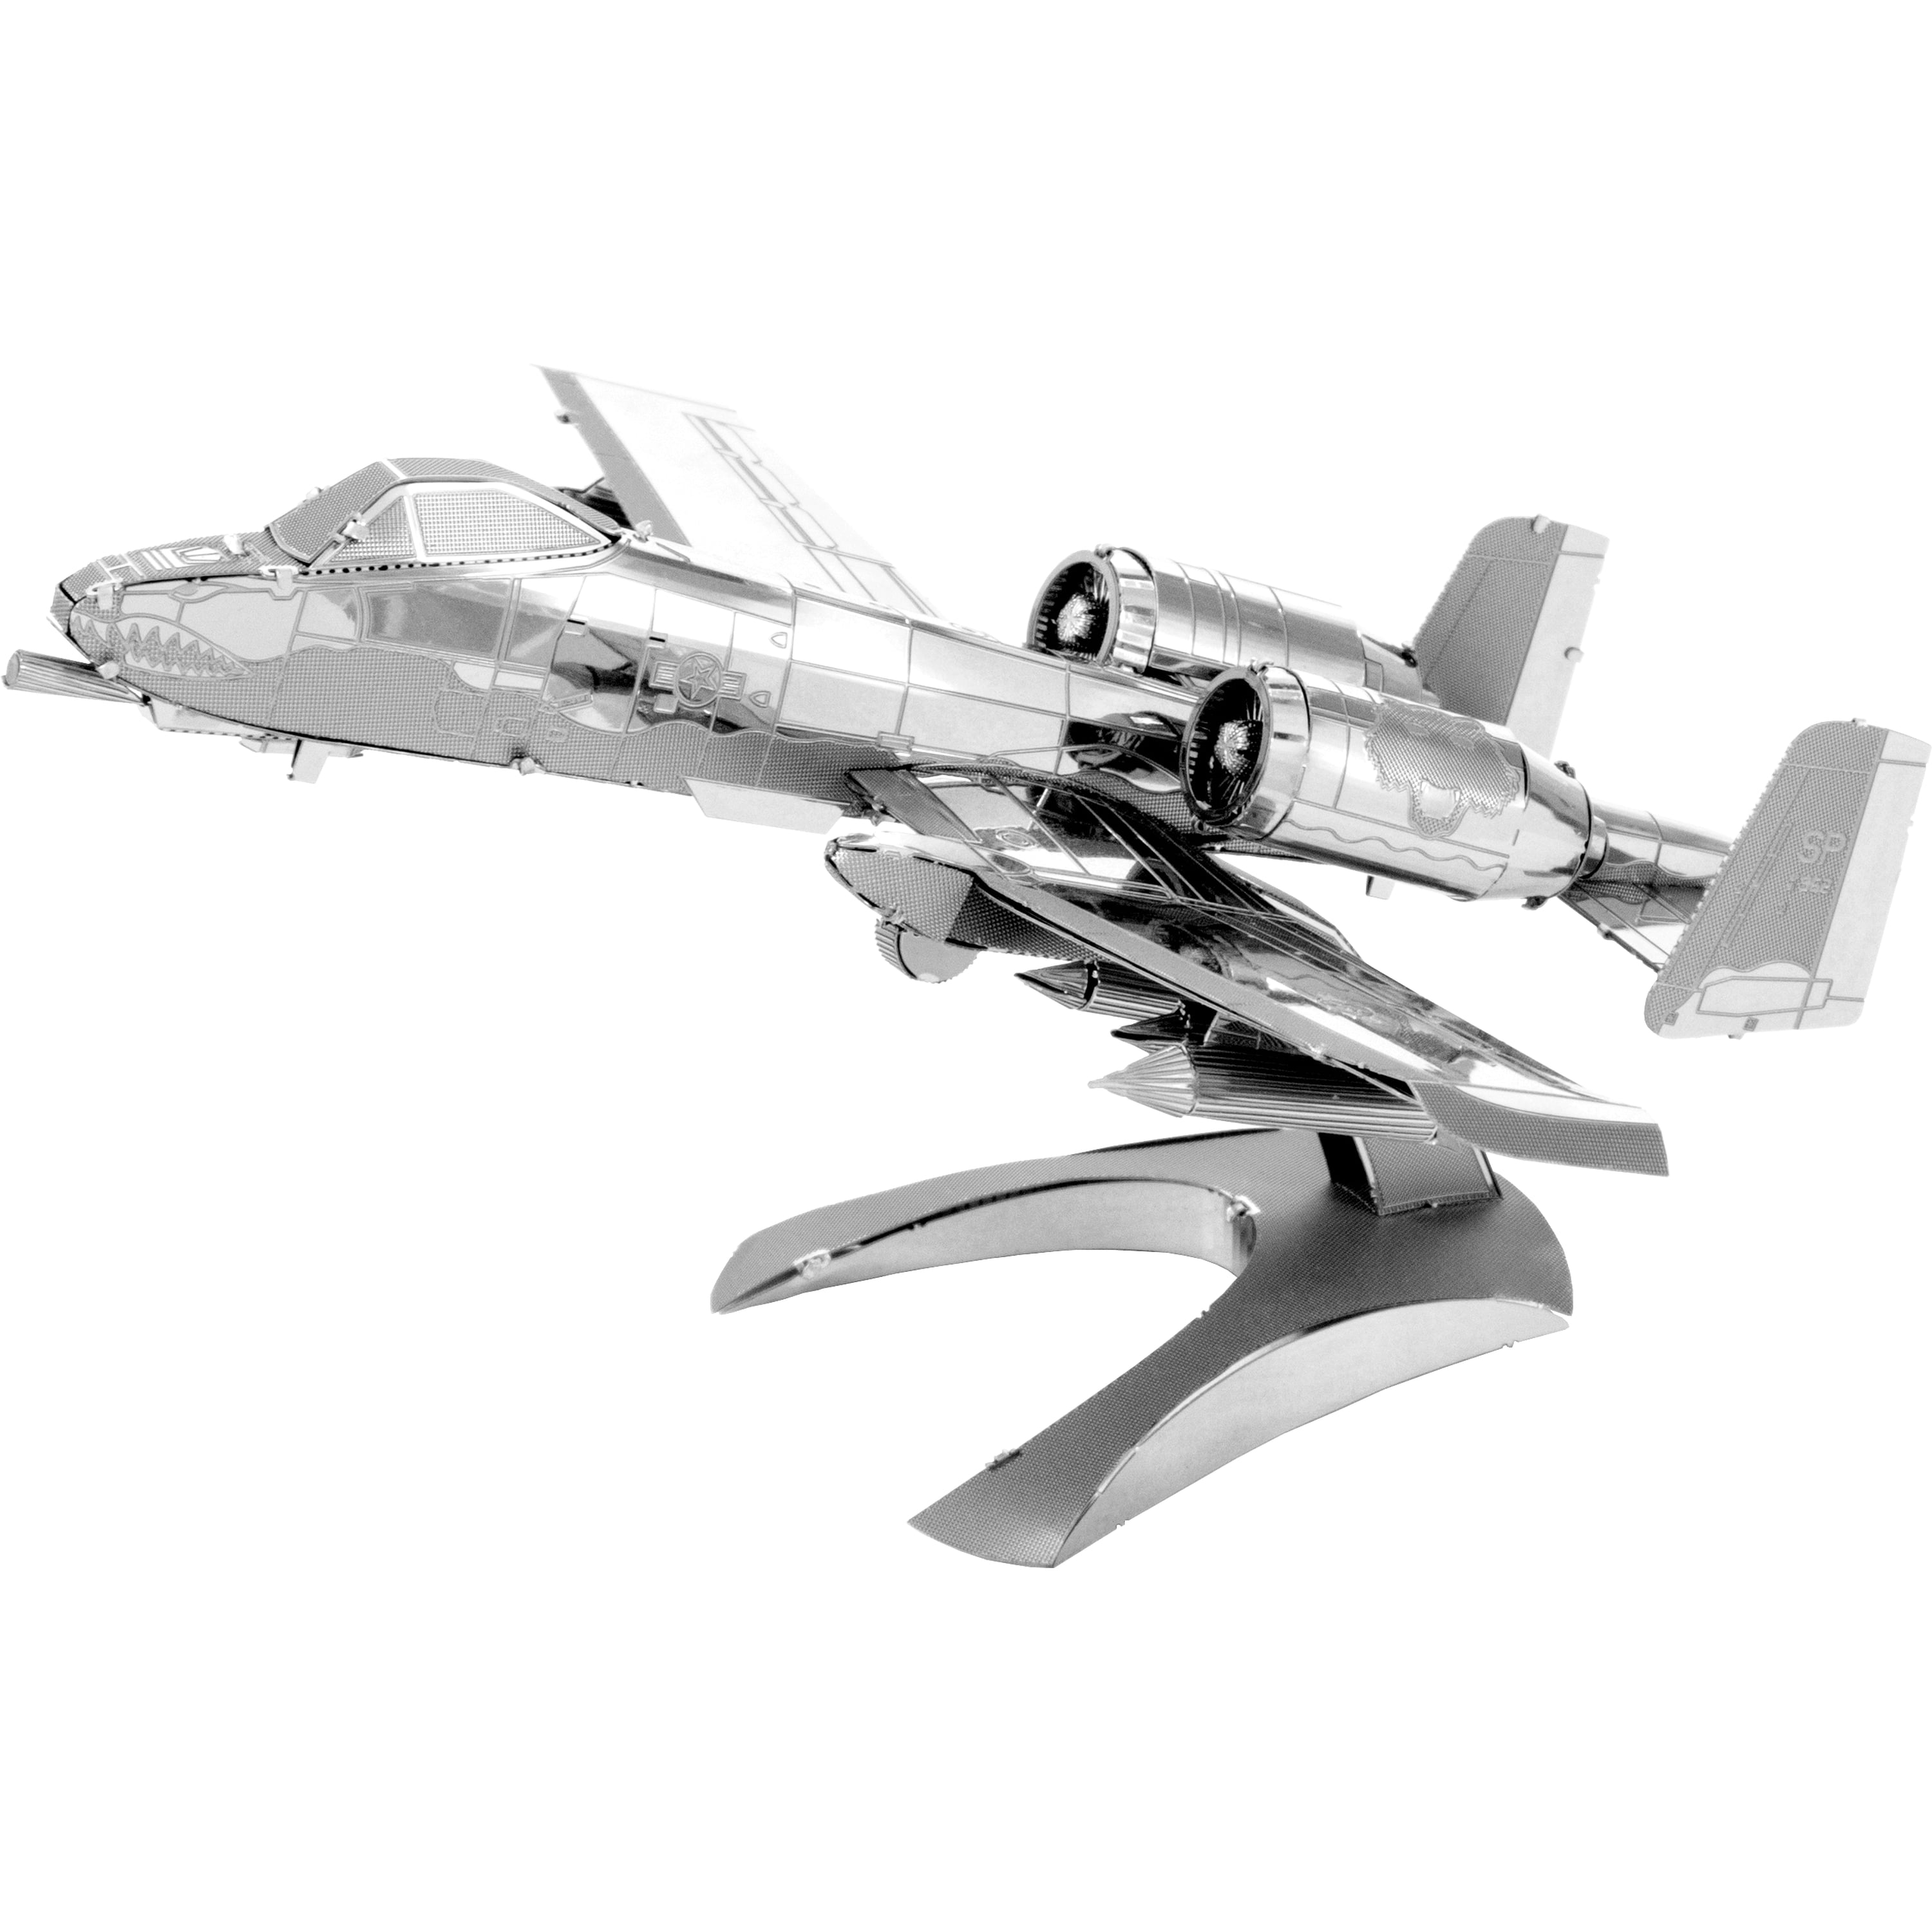 Metal Earth 3D Metal Model Kit A-10 Warthog by Fascinations